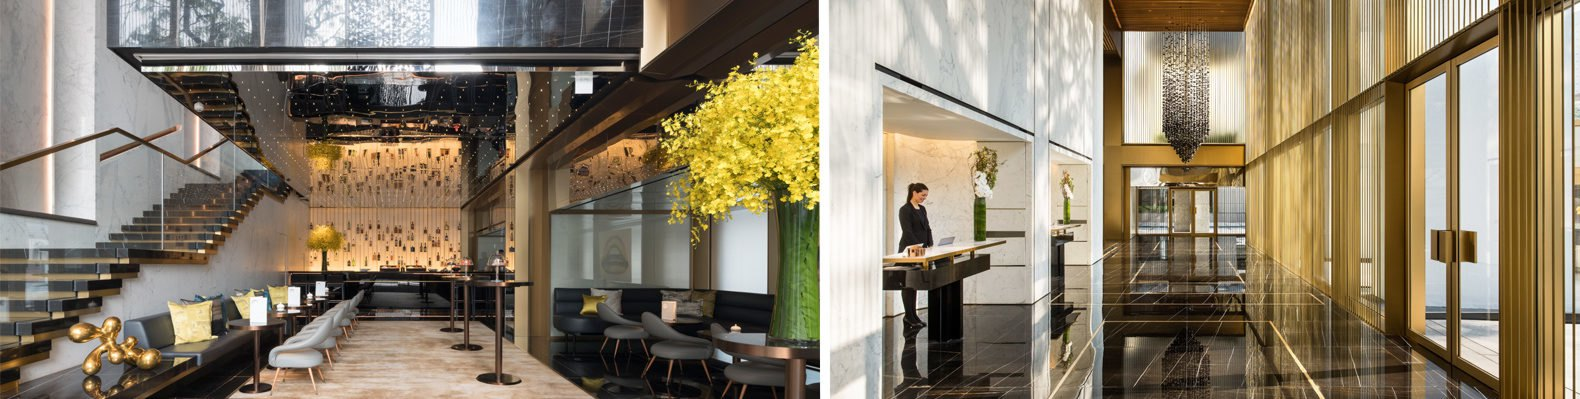 On the left, image of hotel restaurant. On the right, image of black and gold hotel lobby